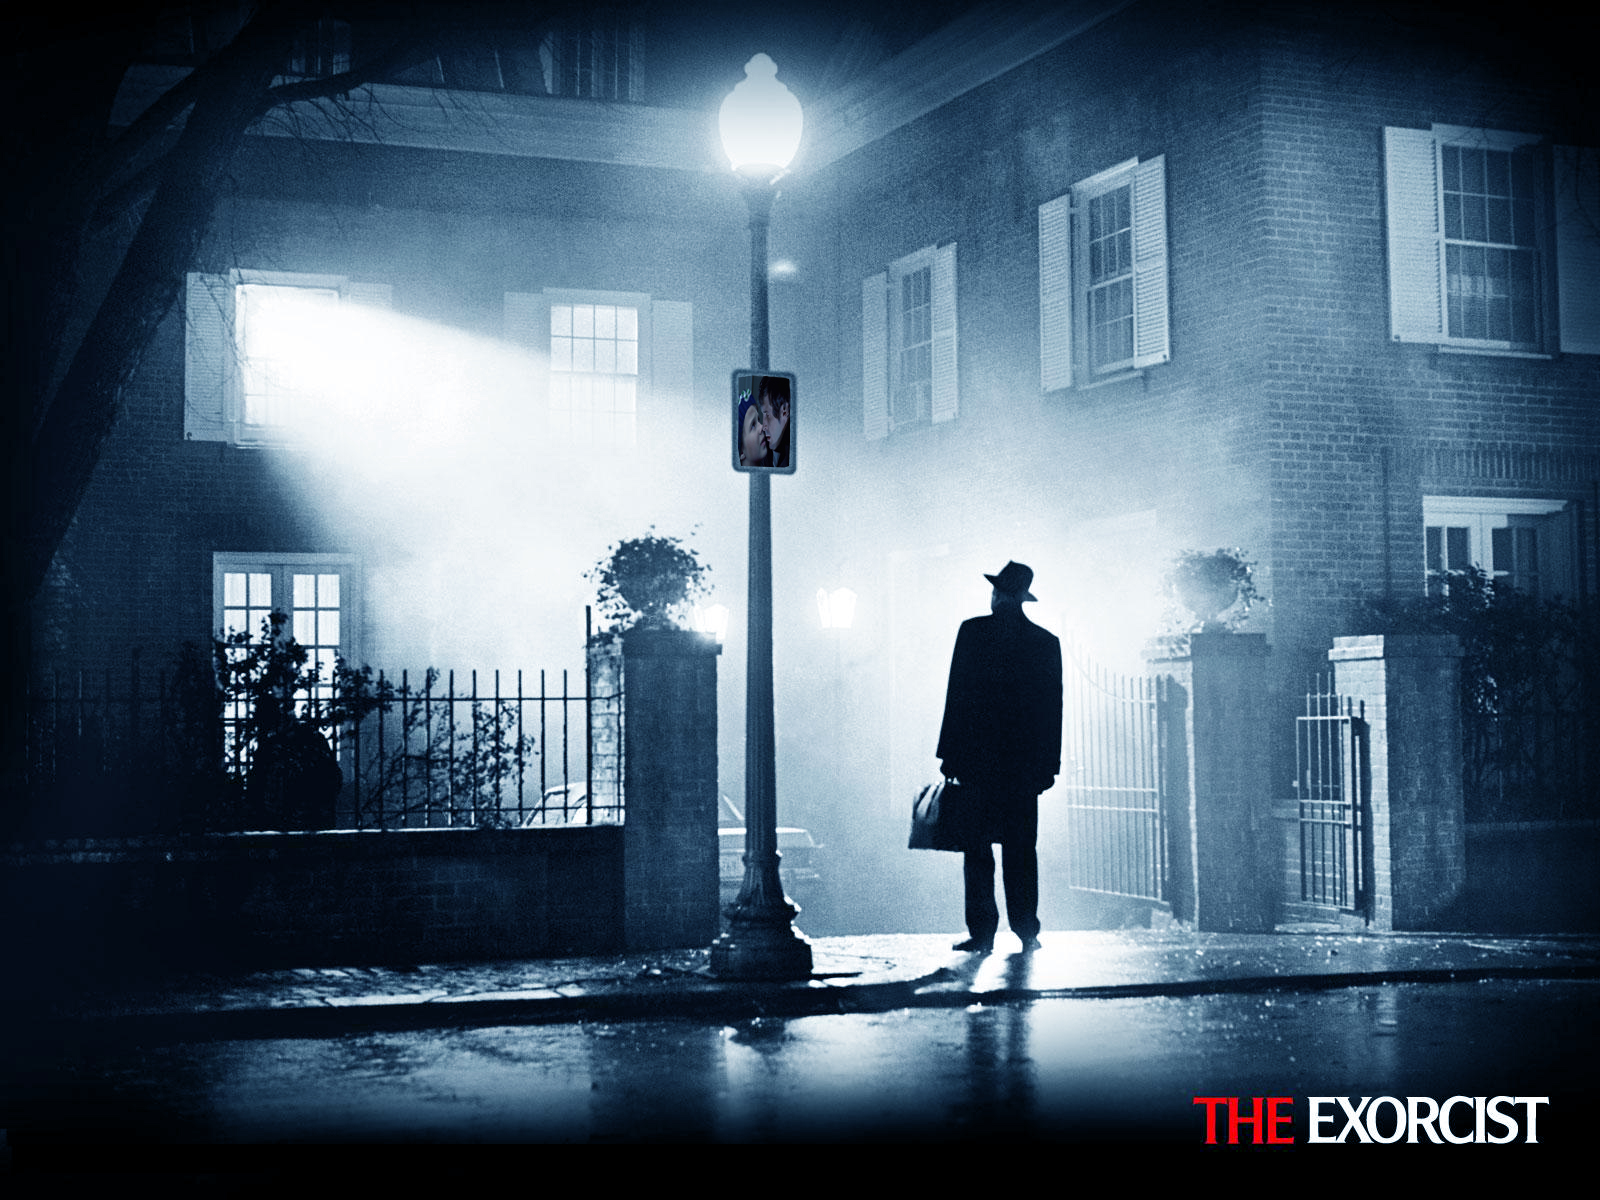 the exorcist wallpaper - photo #10